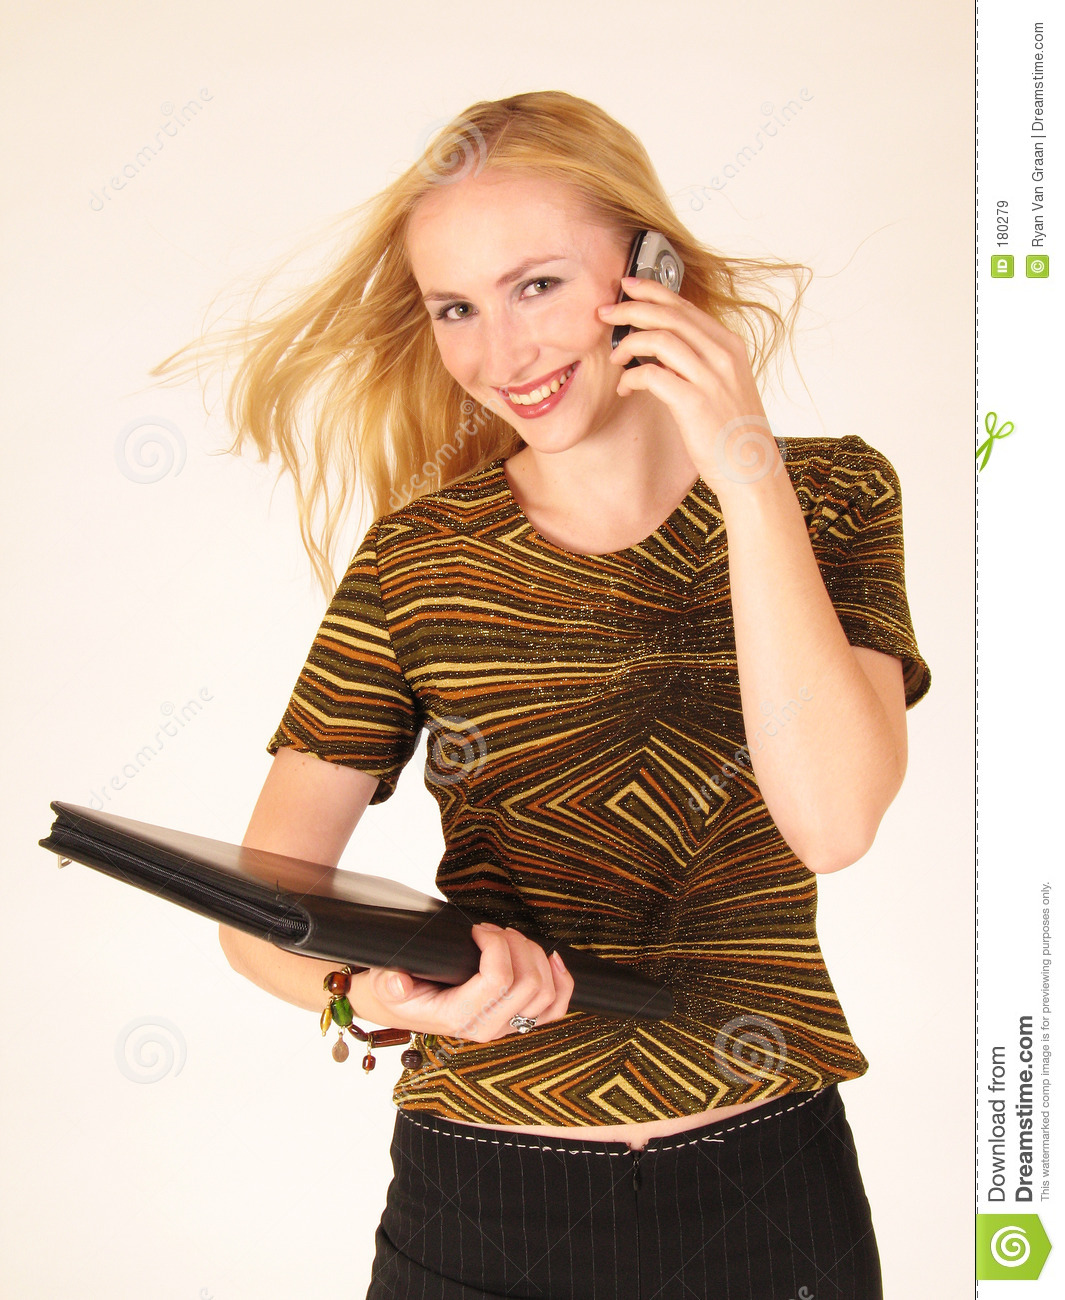 Young Lady Holding A Cell Phone Royalty Free Stock Images   Image